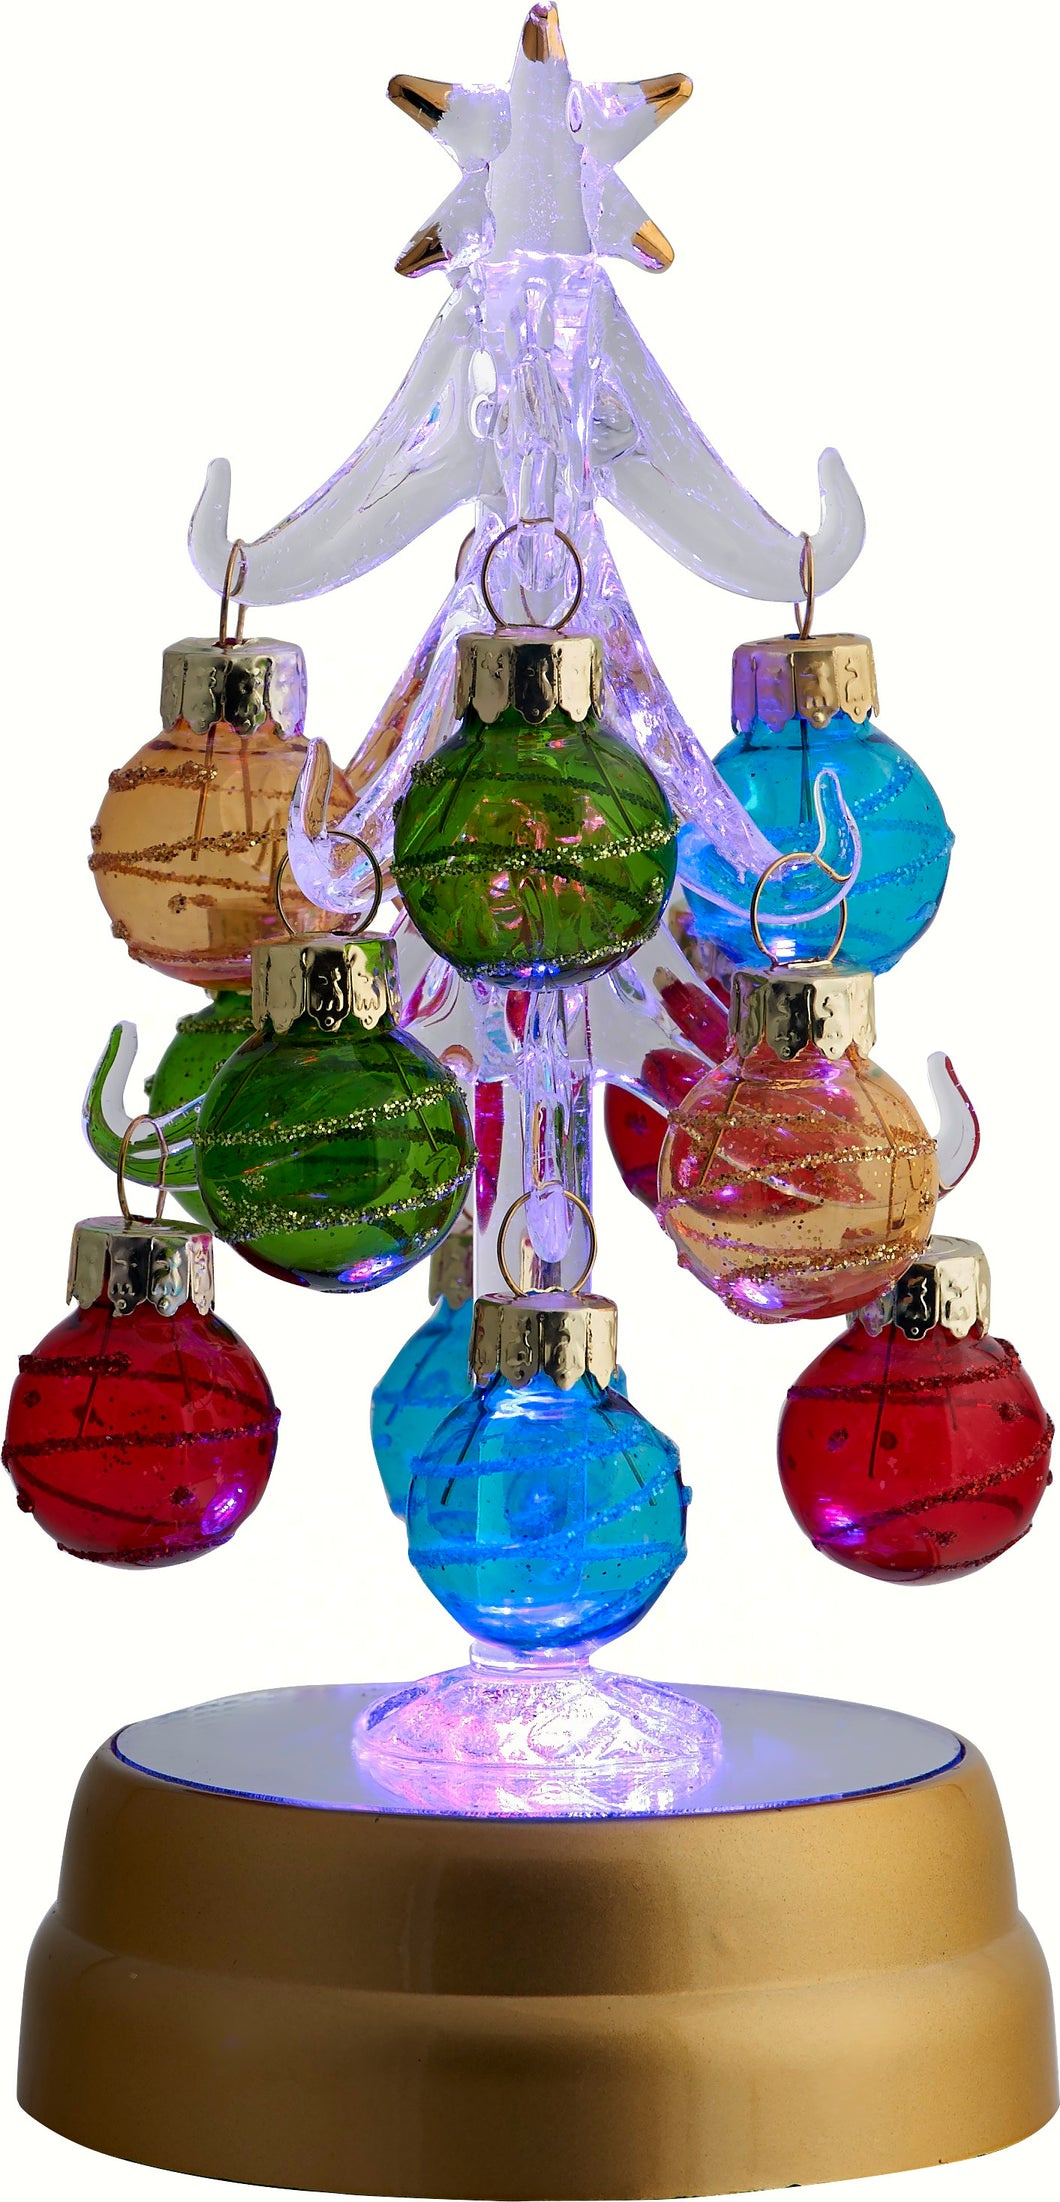 LIGHT UP GLASS TREE - 12 MULTI COLOR ORNAMENTS